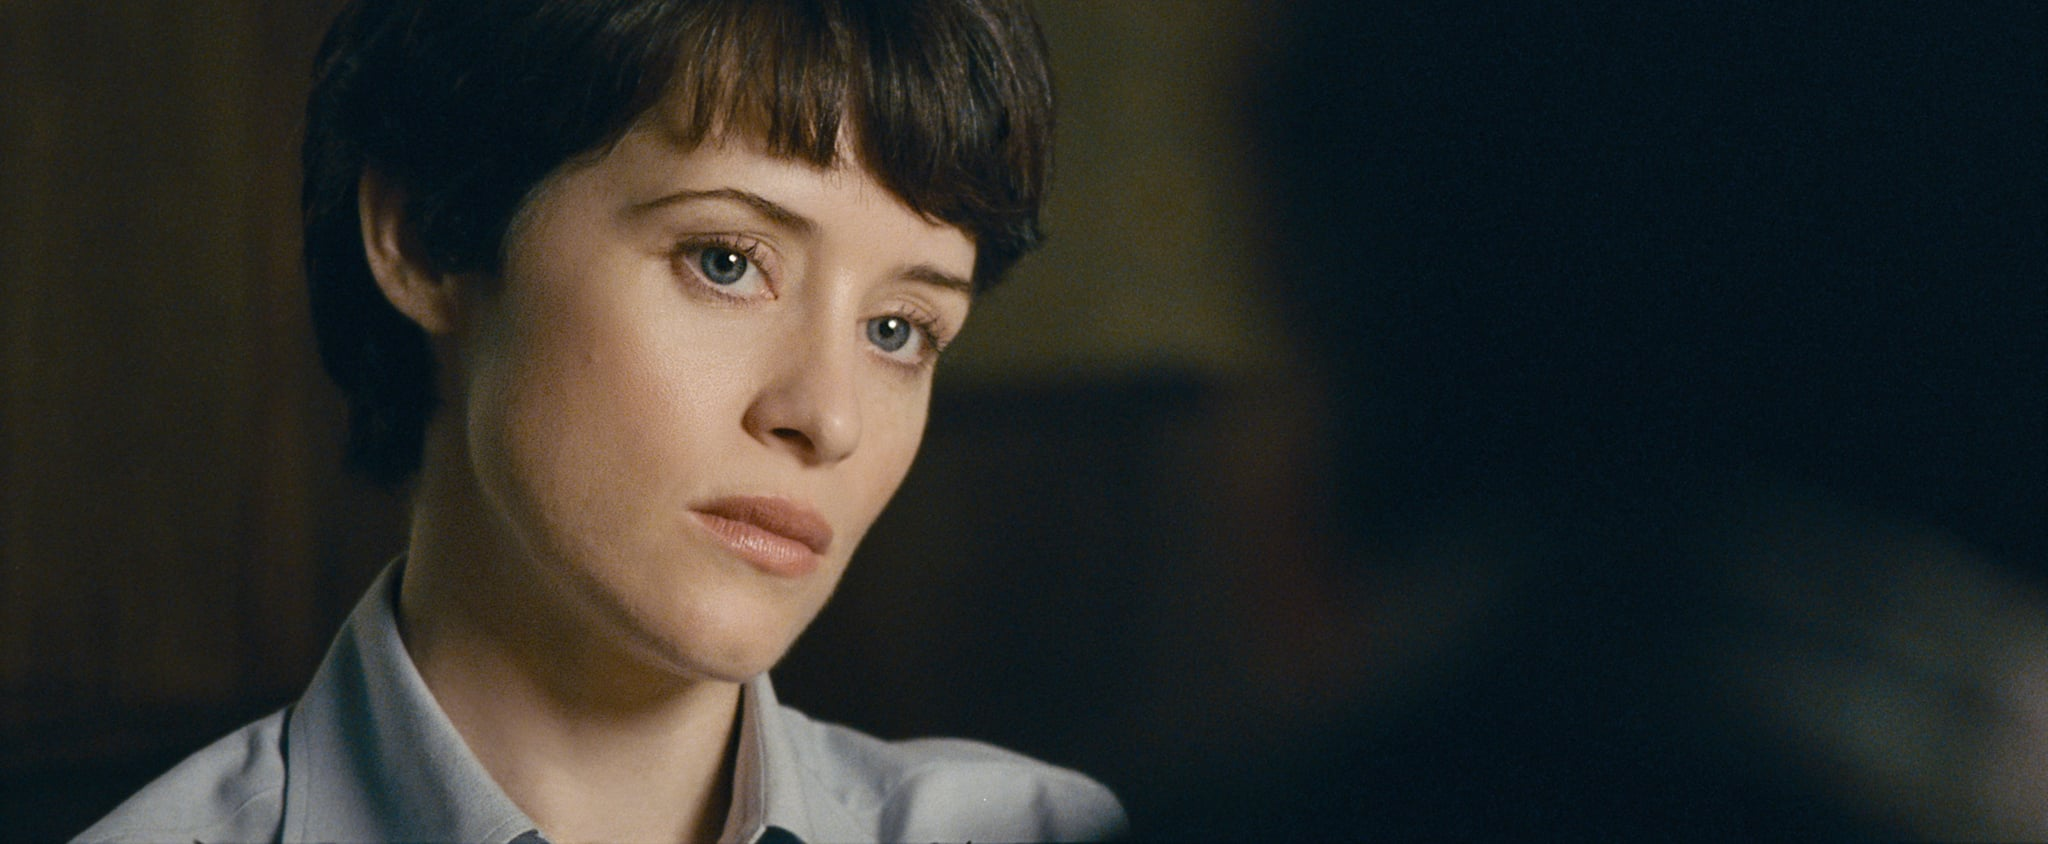 Claire Foy as Janet Shearon in First Man